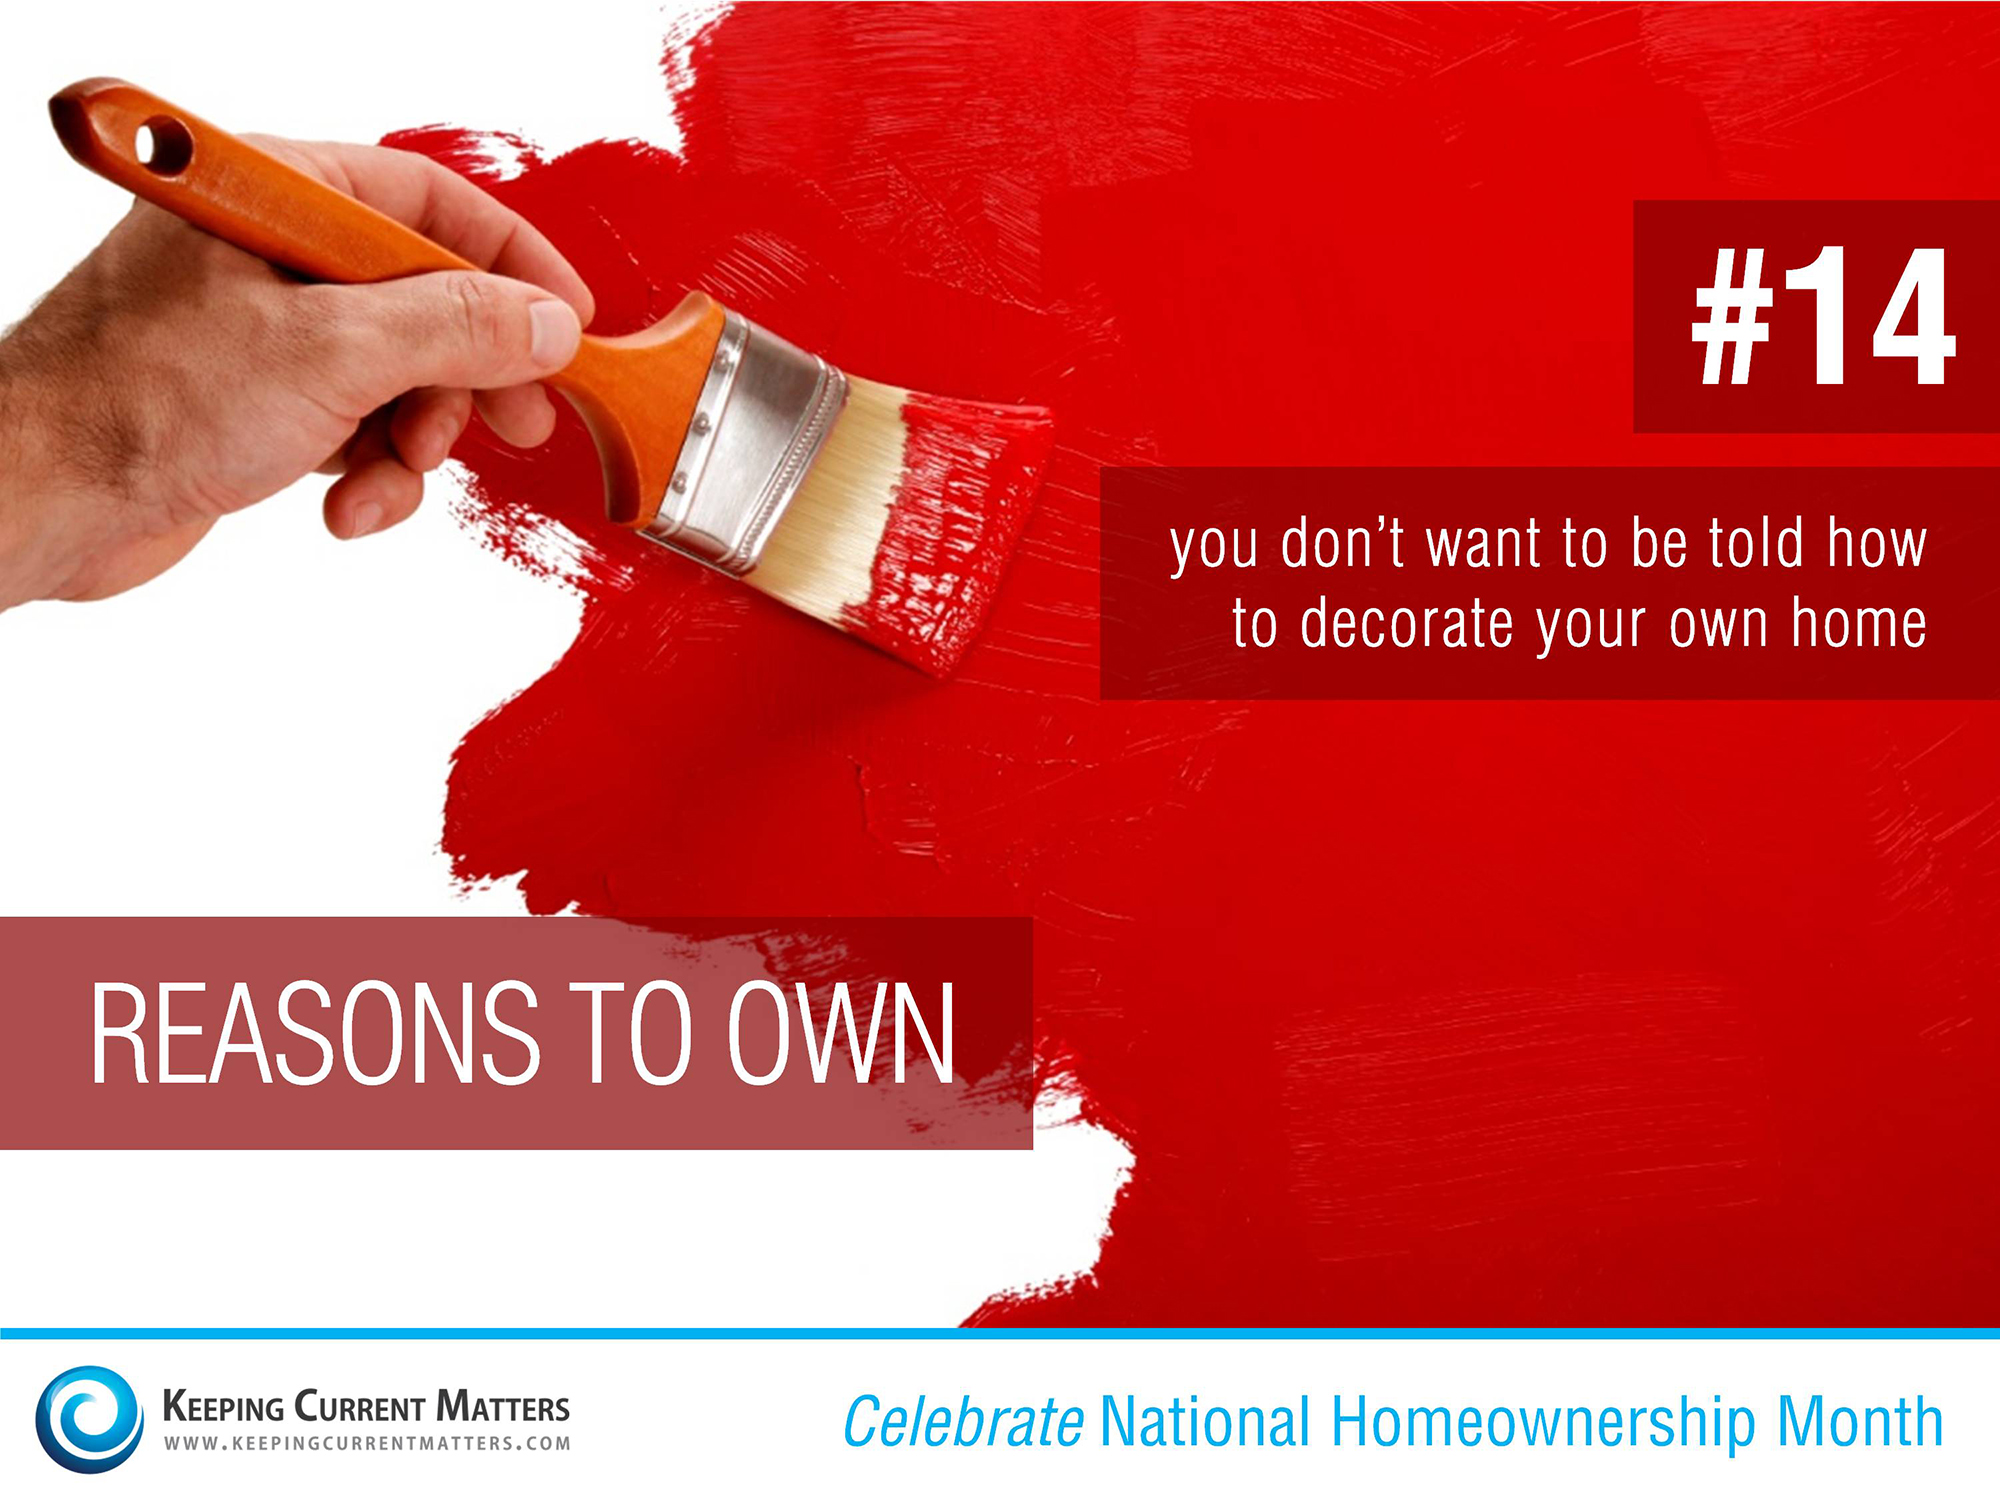 Reasons to Own #14 | Keeping Current Matters